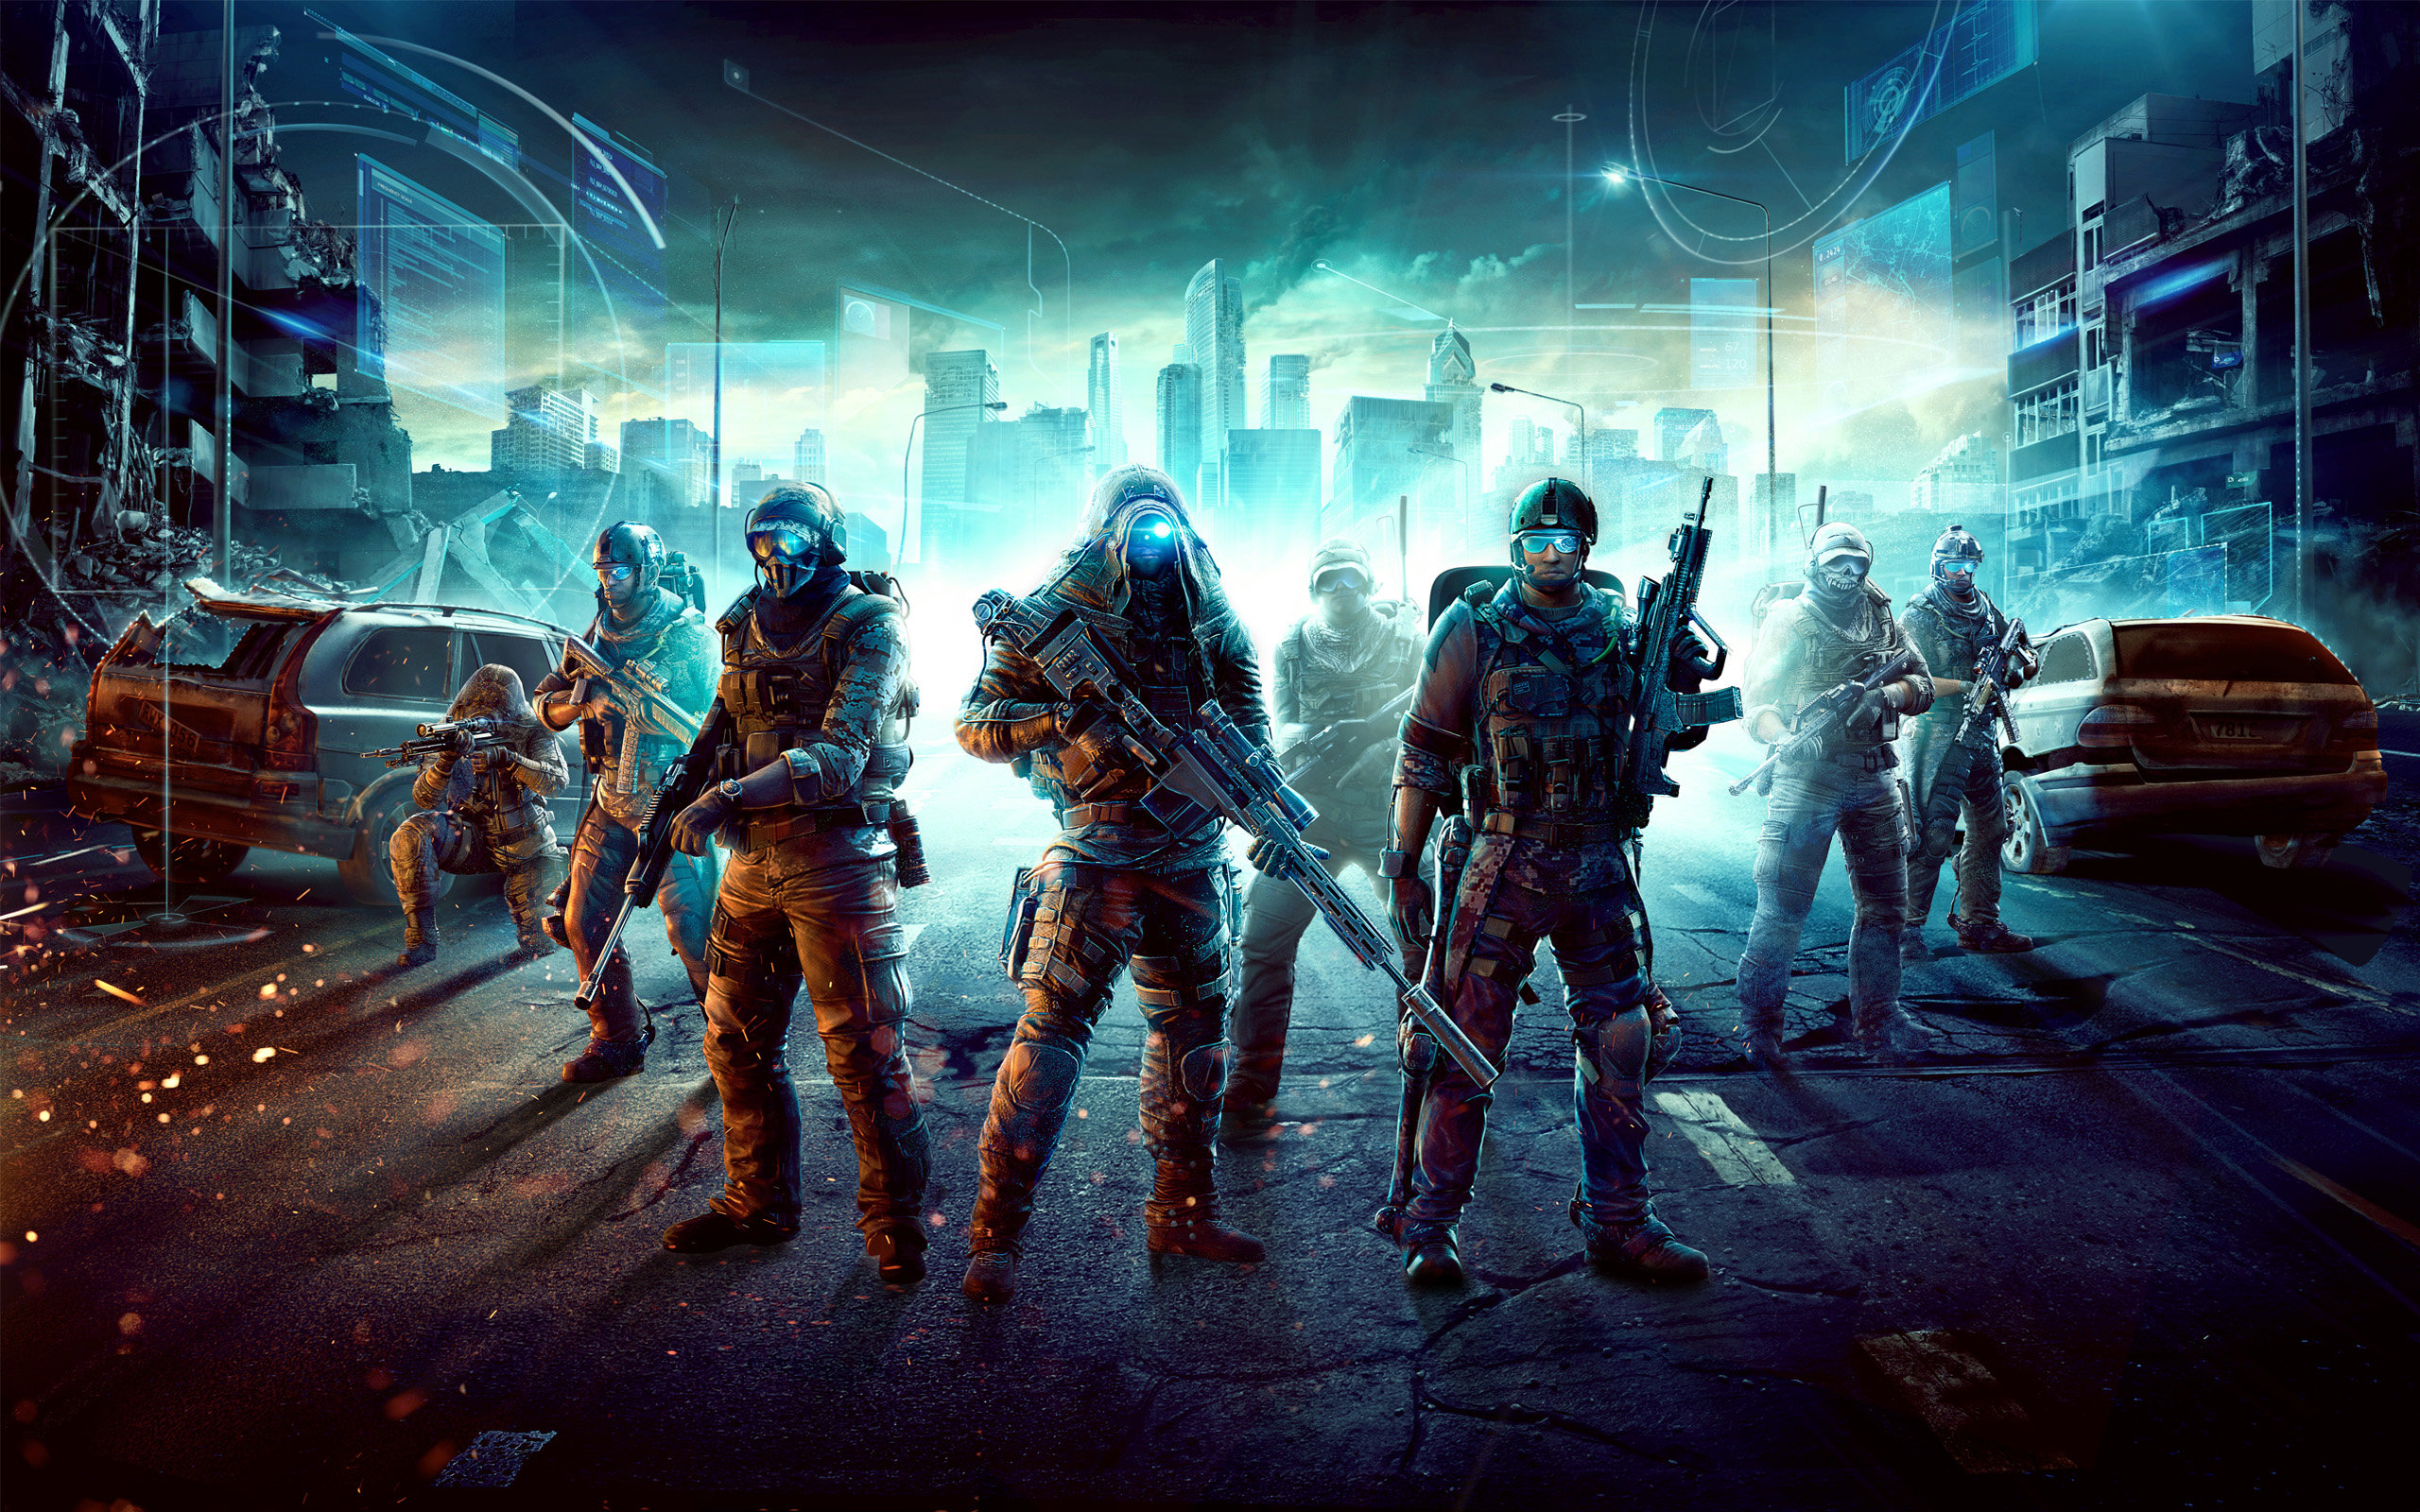 Free Download Tom Clancys Ghost Recon Phantoms Background ID73103 Hd 2560x1600 For Computer